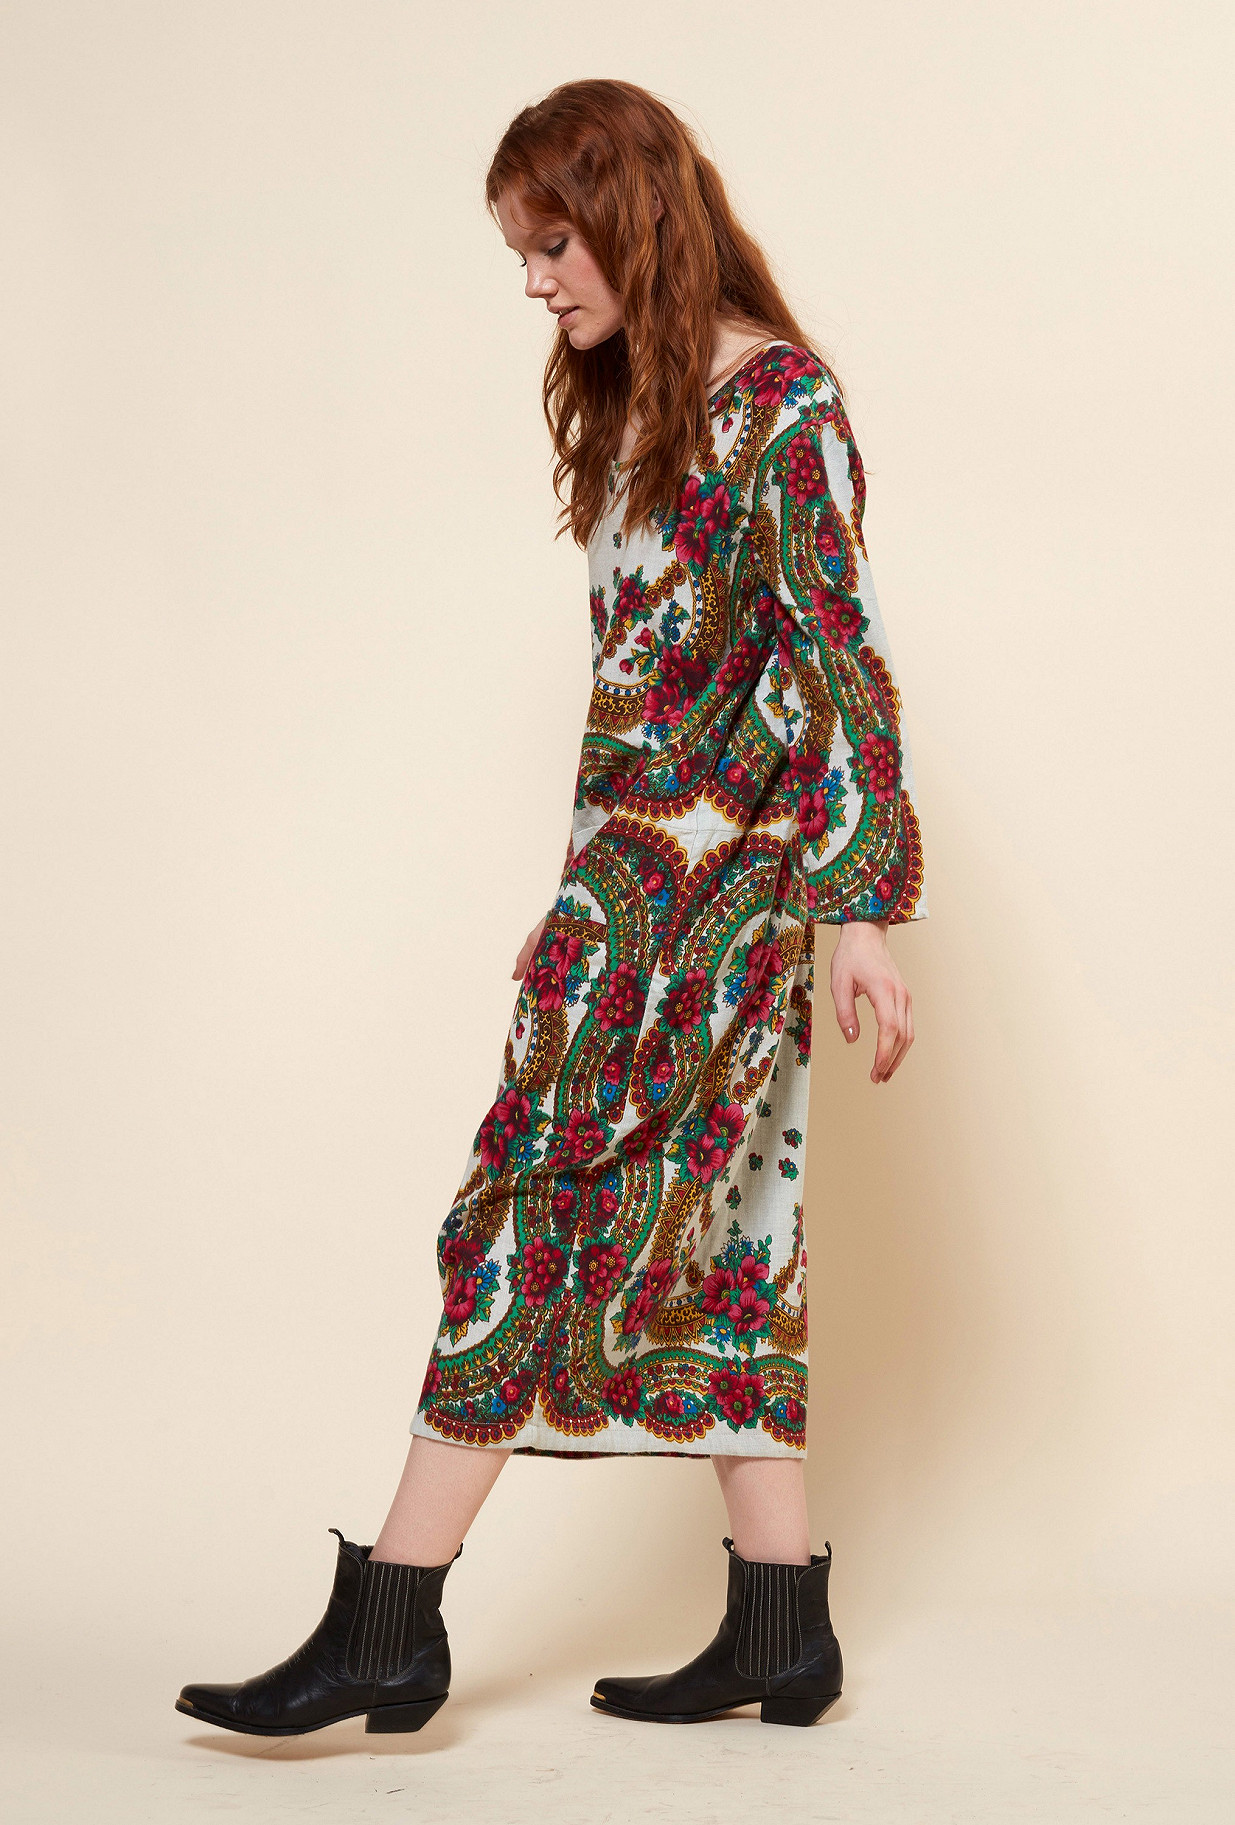 Floral print Dress Pachmina Mes Demoiselles Paris